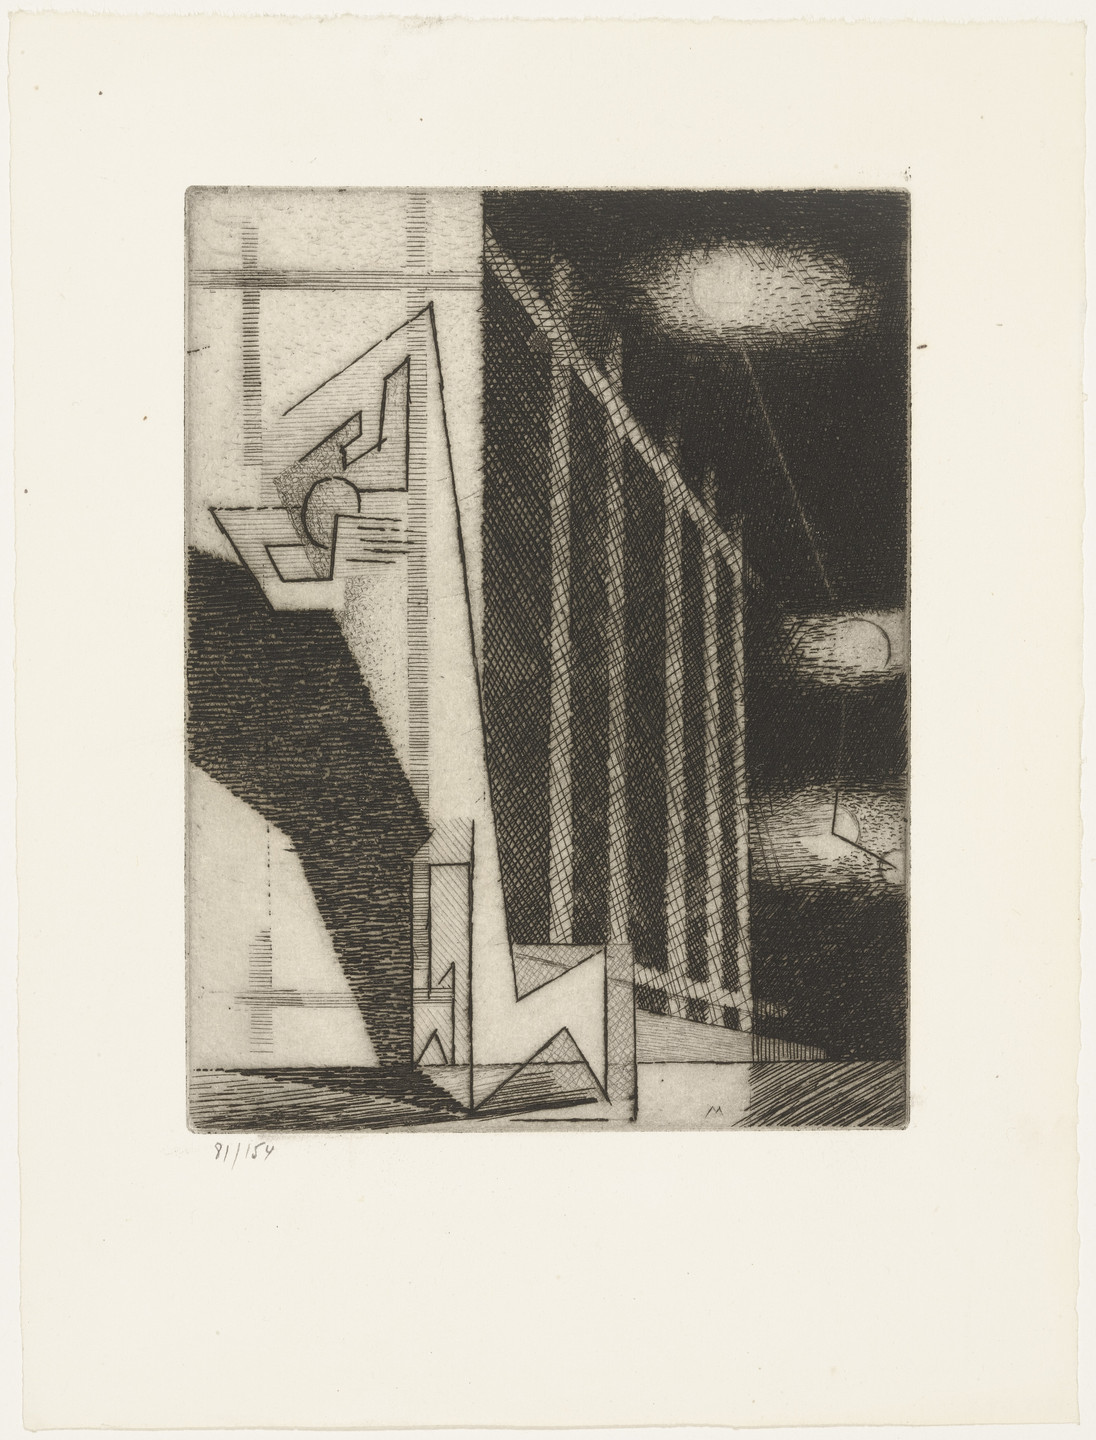 Louis Marcoussis. Several Moons (Plusiers lunes) from Ten Etchings for Aurélia (10 Eaux-fortes pour Aurélia) by Gérard de Nerval. 1931